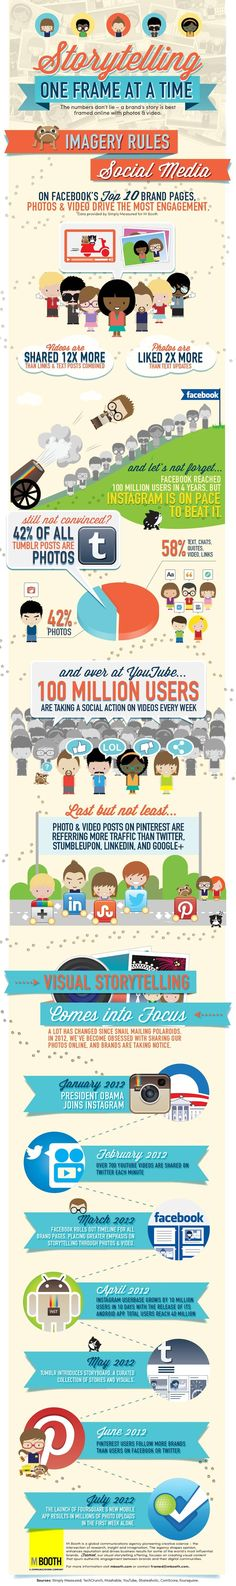 Imagery Rules Social Media [Infographic]